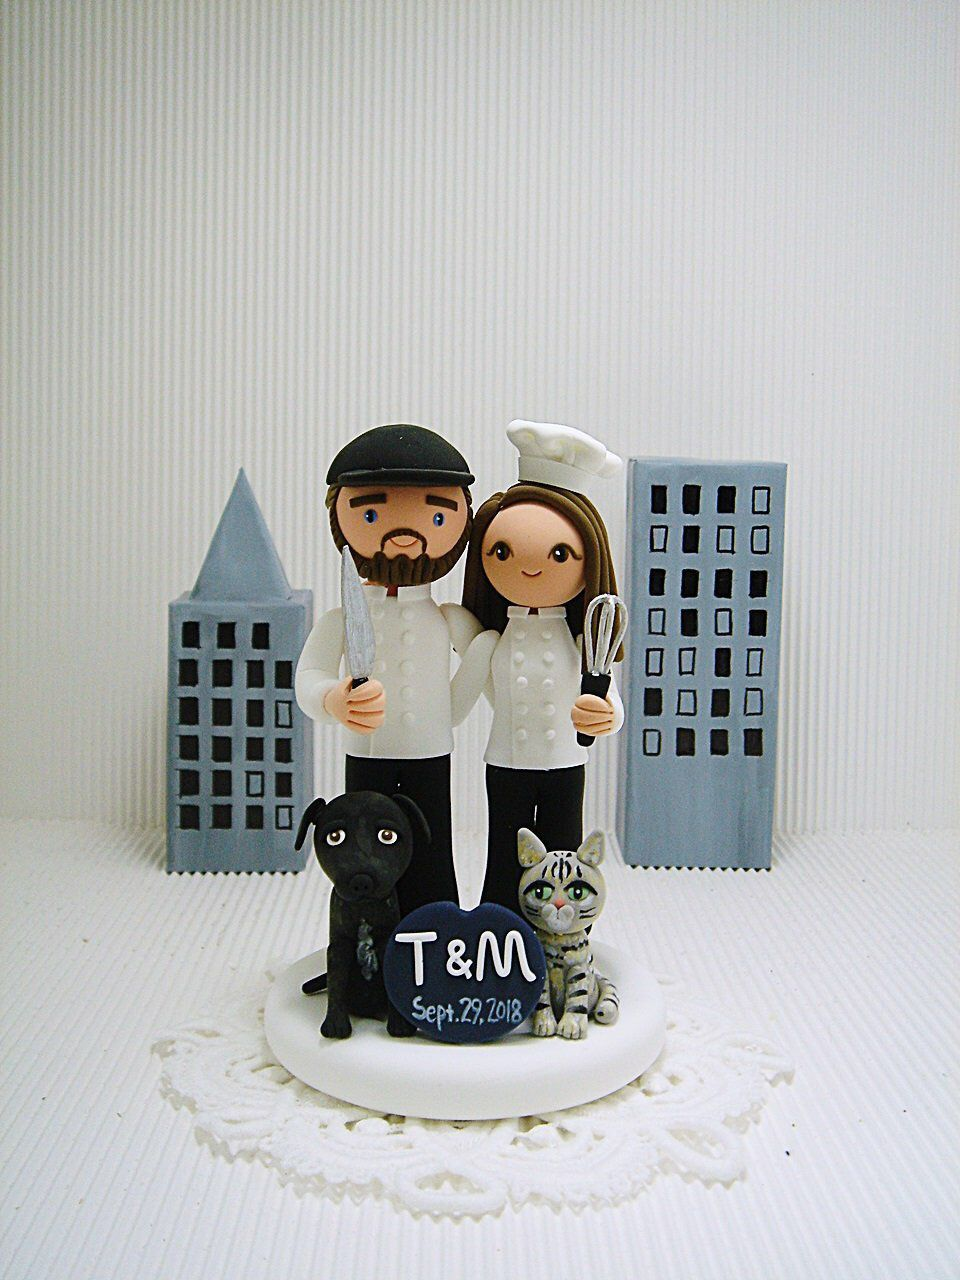 Chef couple with cat dog custom wedding cake topper mr and mrs